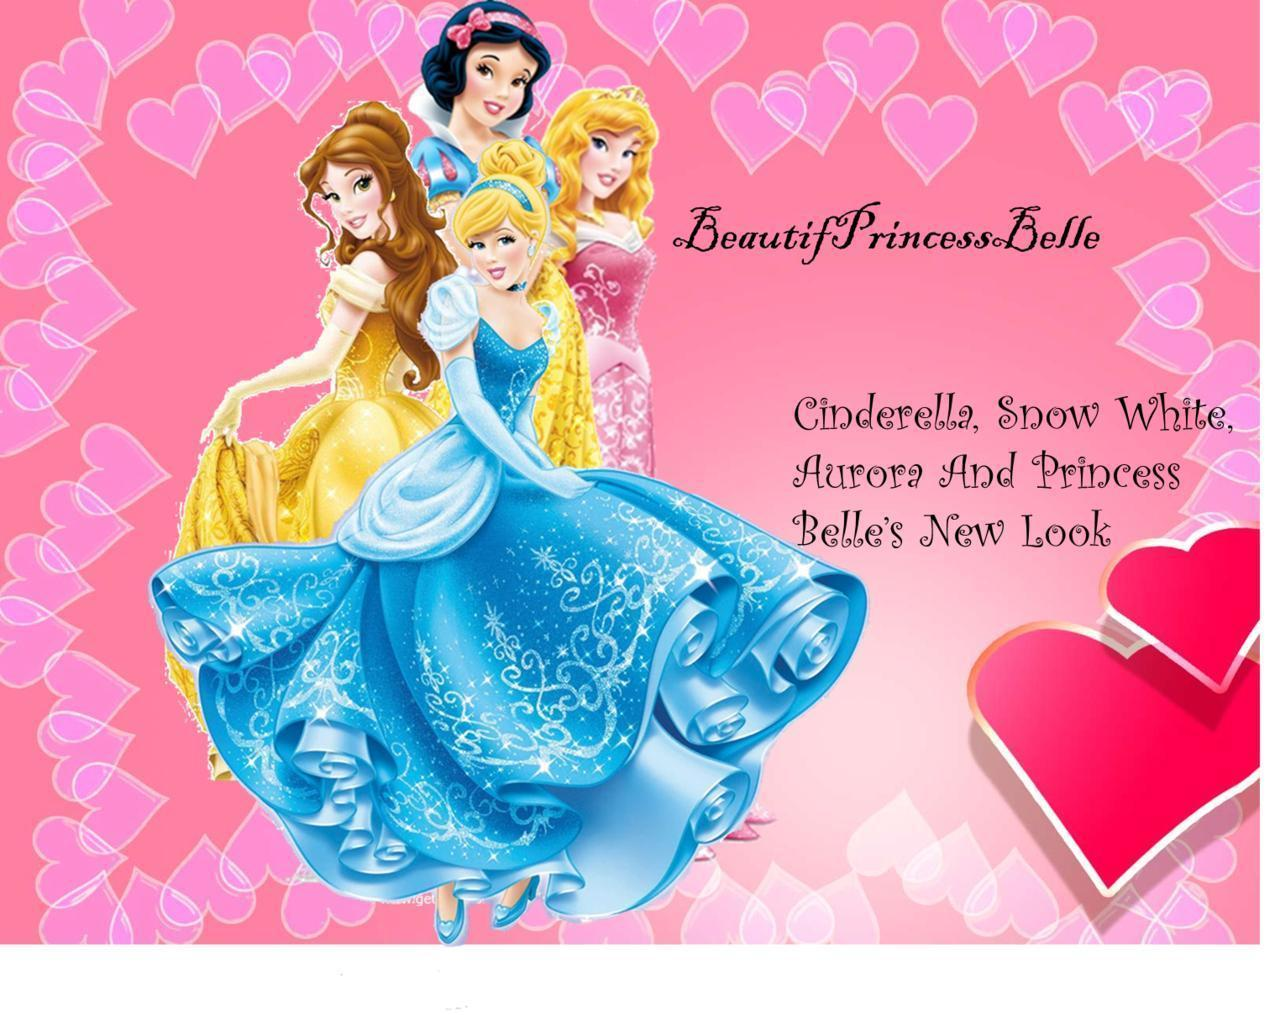 New Disney Princesses Look Images Pictures